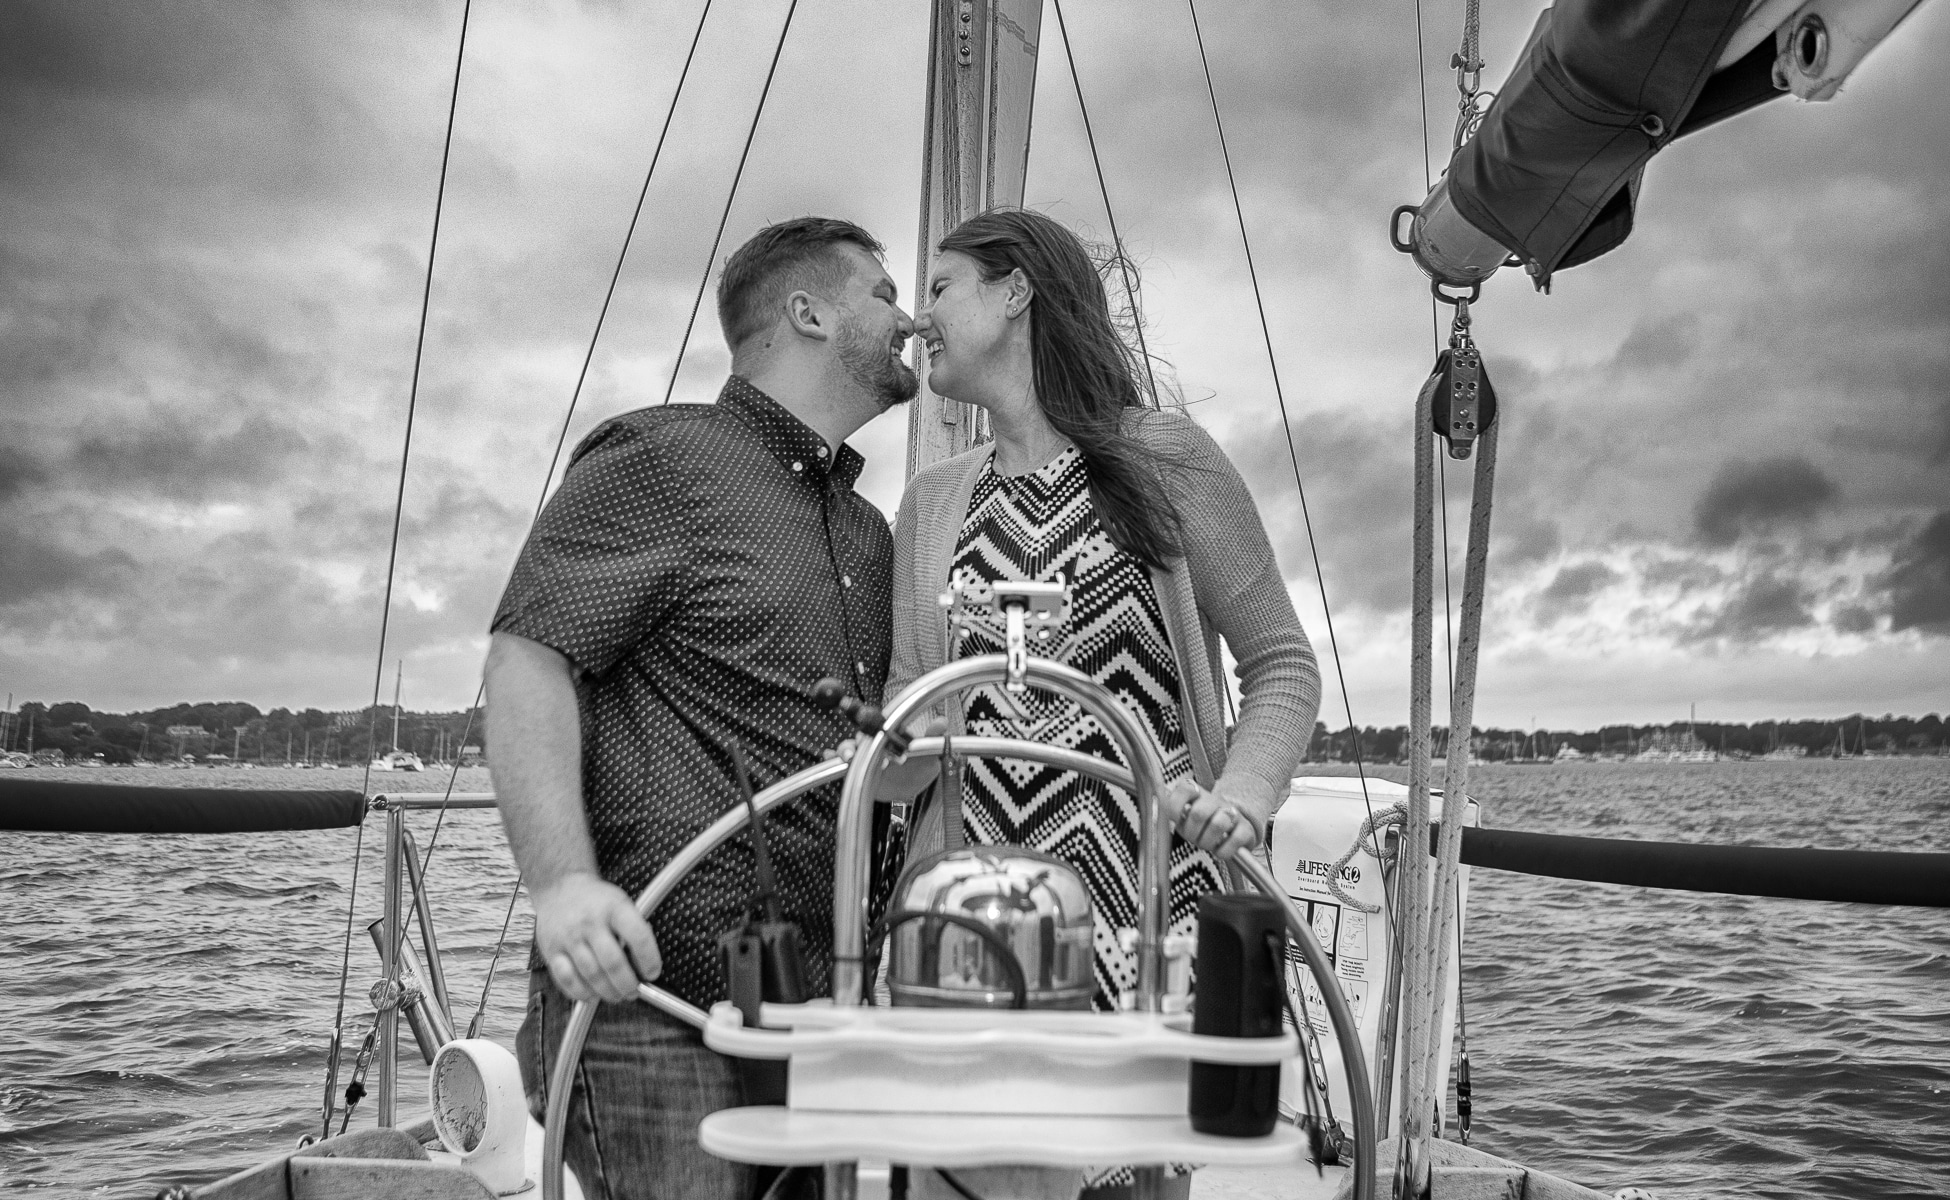 A surprise proposal on a yacht in newport, rhode island